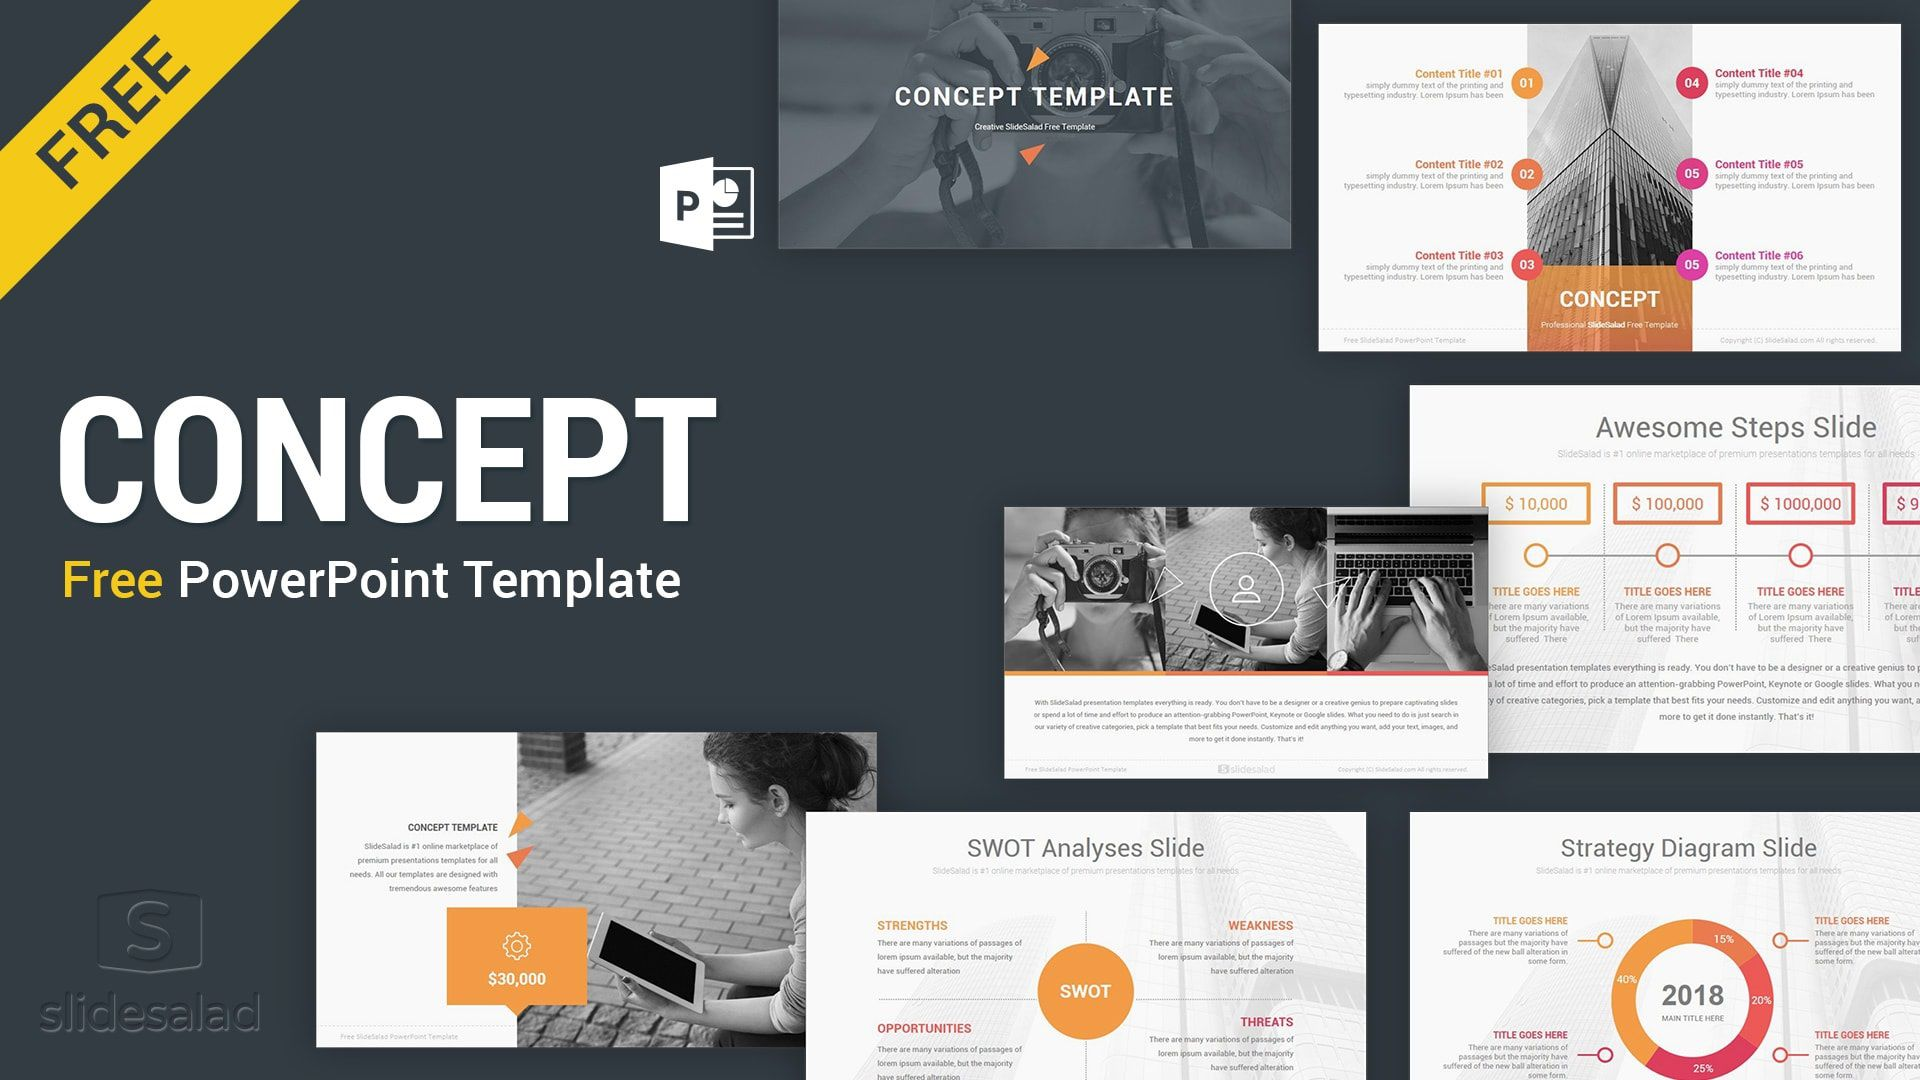 004 Breathtaking Ppt Template Free Download Idea  Powerpoint 2020 Microsoft History 2018Full